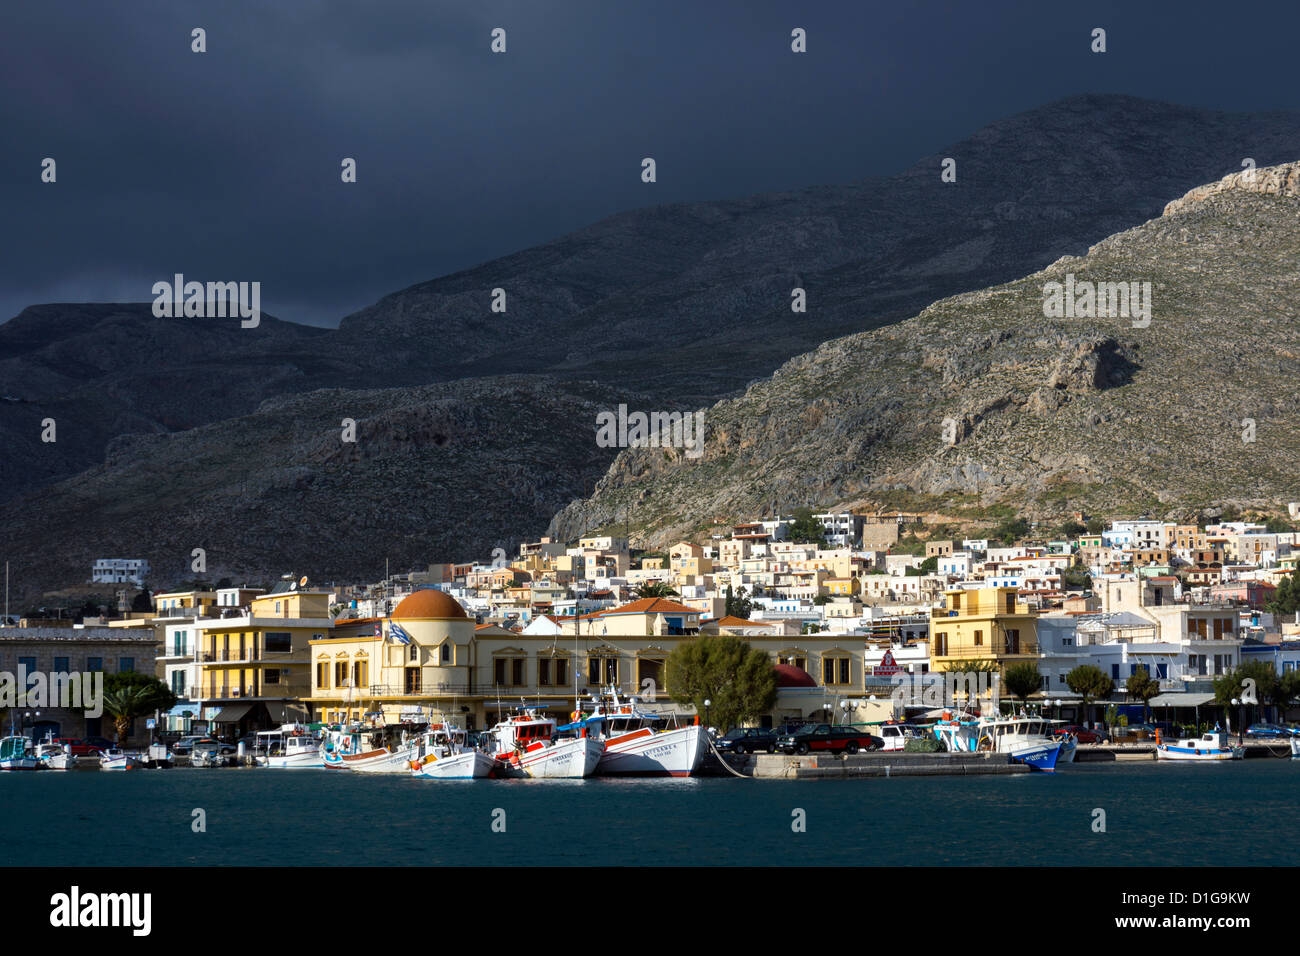 Pothia, port town of Kalymnos, with boats and dark skies - Stock Image